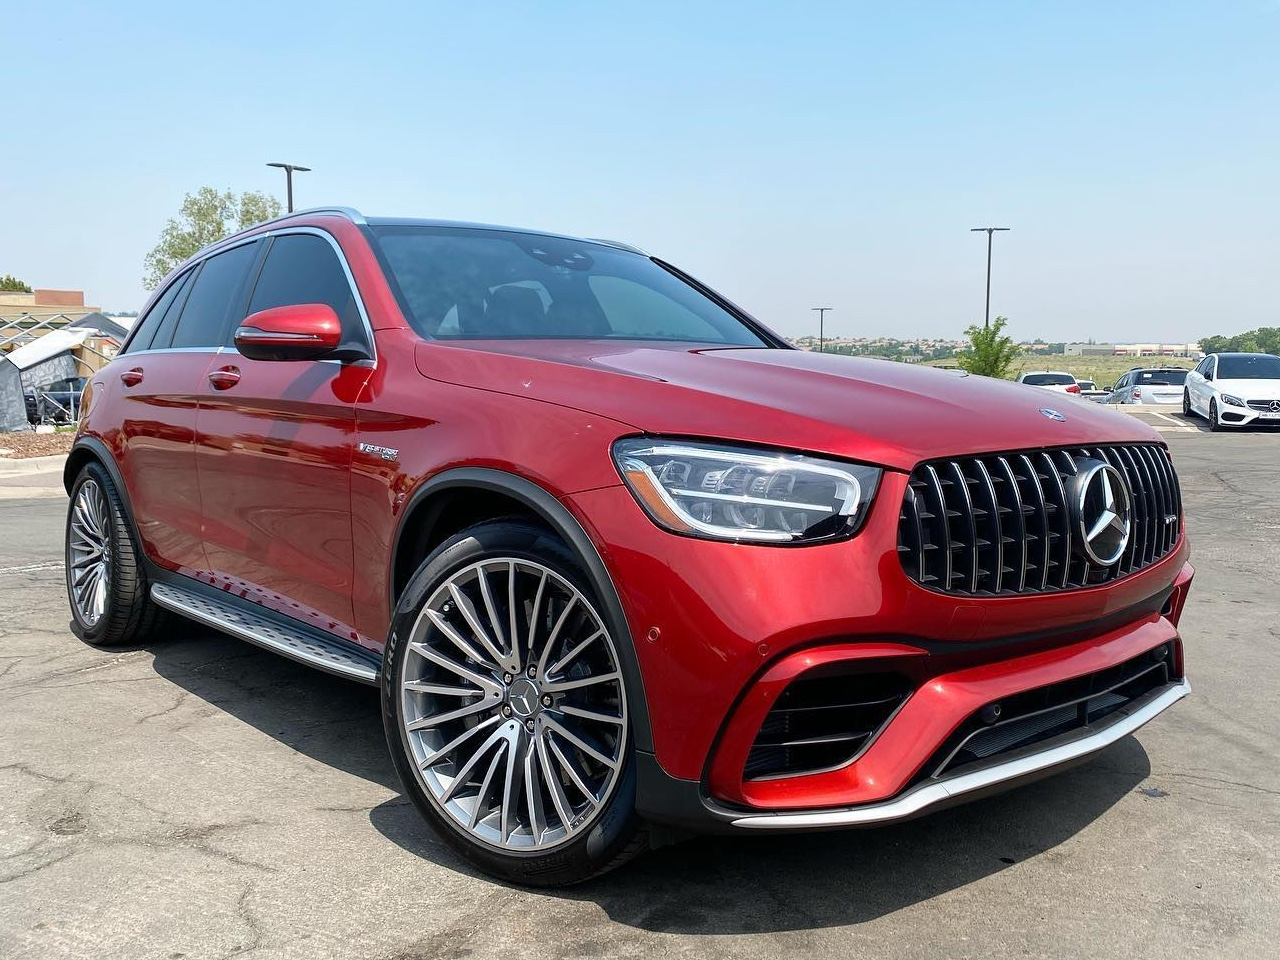 Mercedes Benz AMG GLC63 window tint front side view